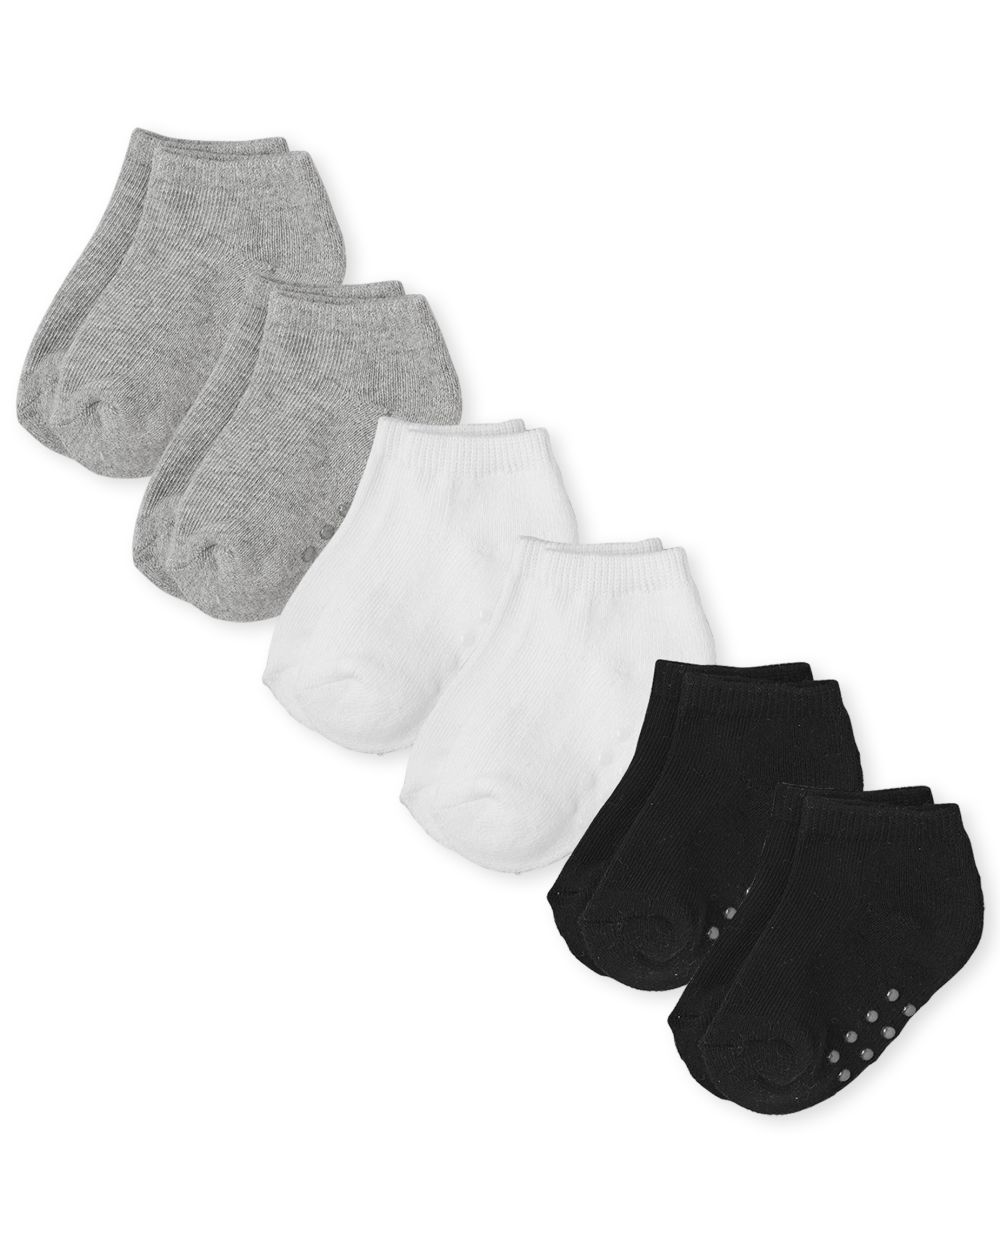 Unisex Baby And Toddler Ankle Socks 6-Pack